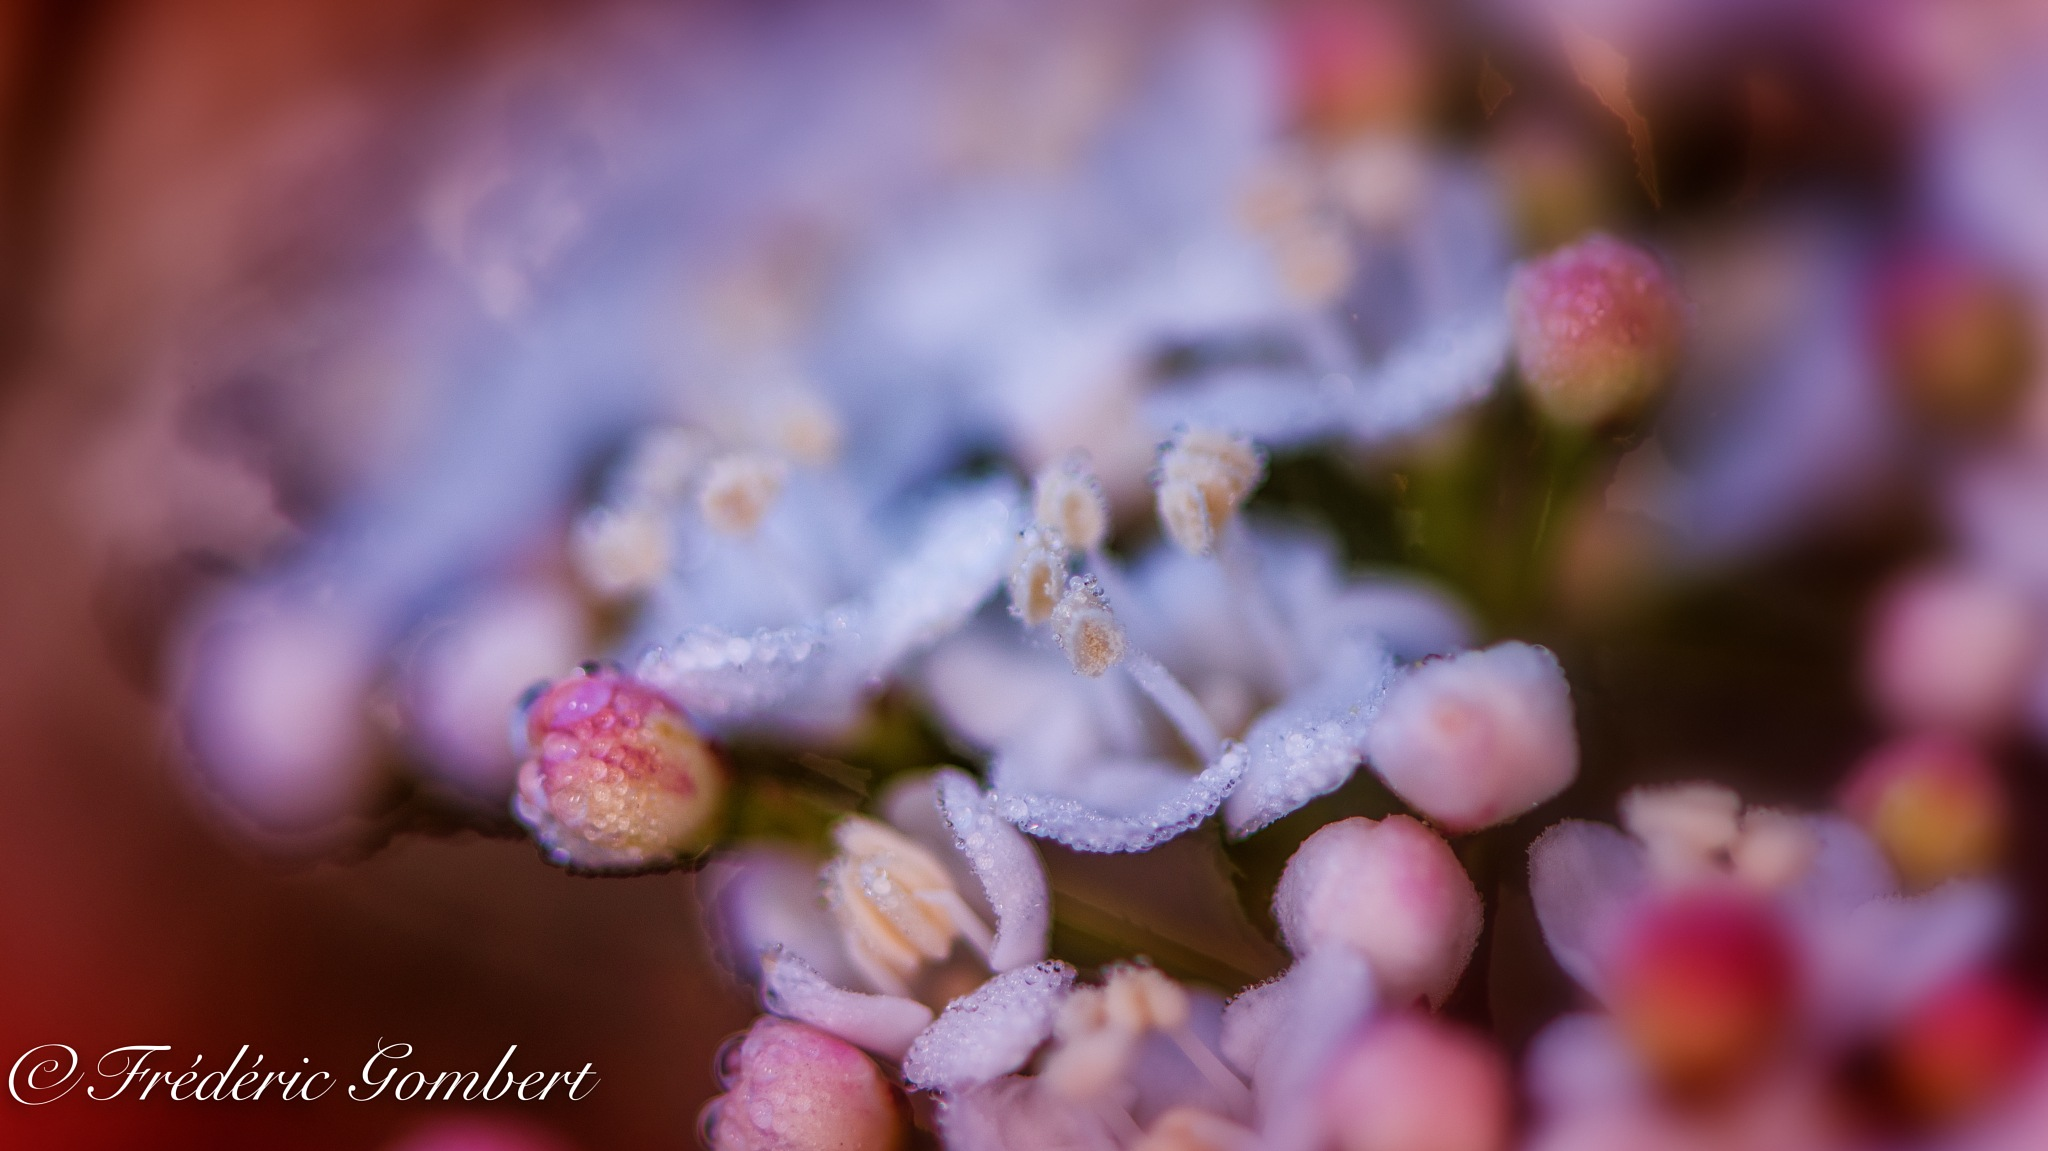 Morning effect by Frederic Gombert